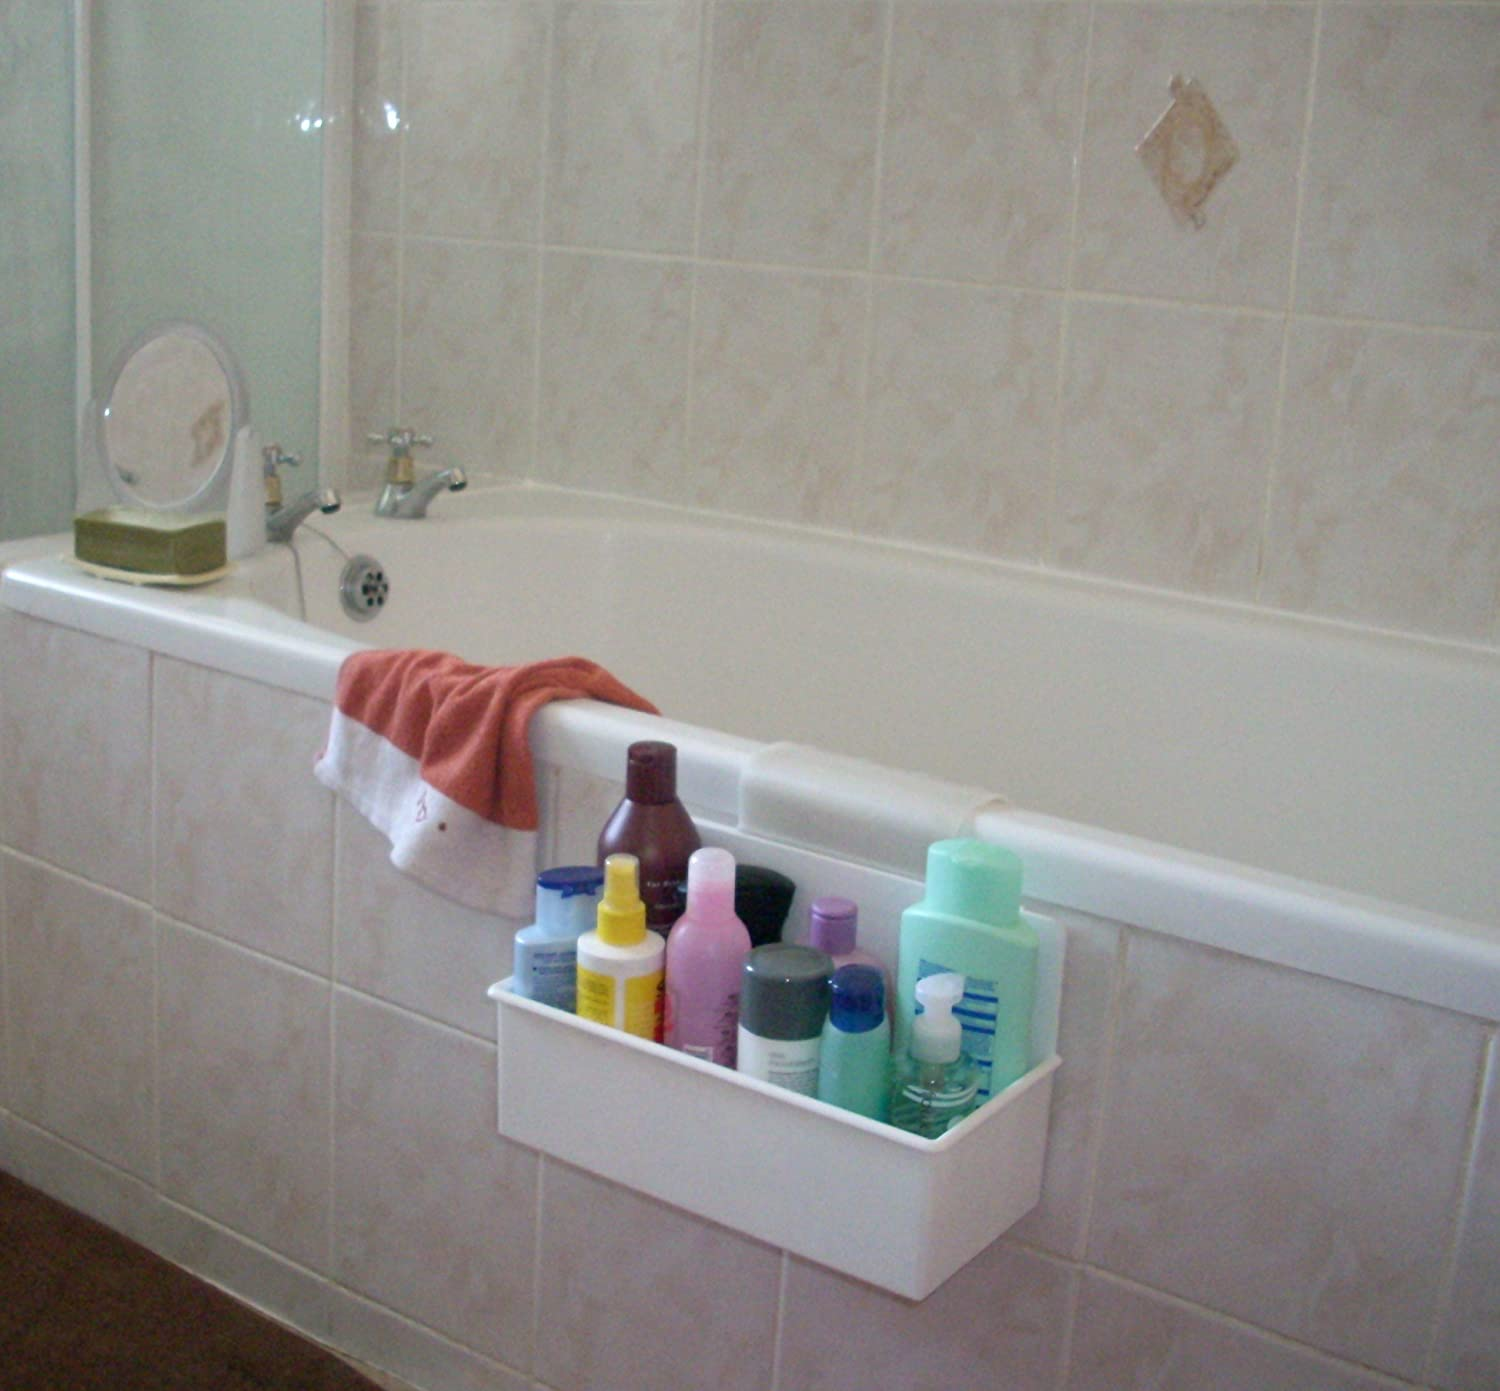 Bath Caddy Holder Bathroom Accessories: Amazon.co.uk: Kitchen & Home